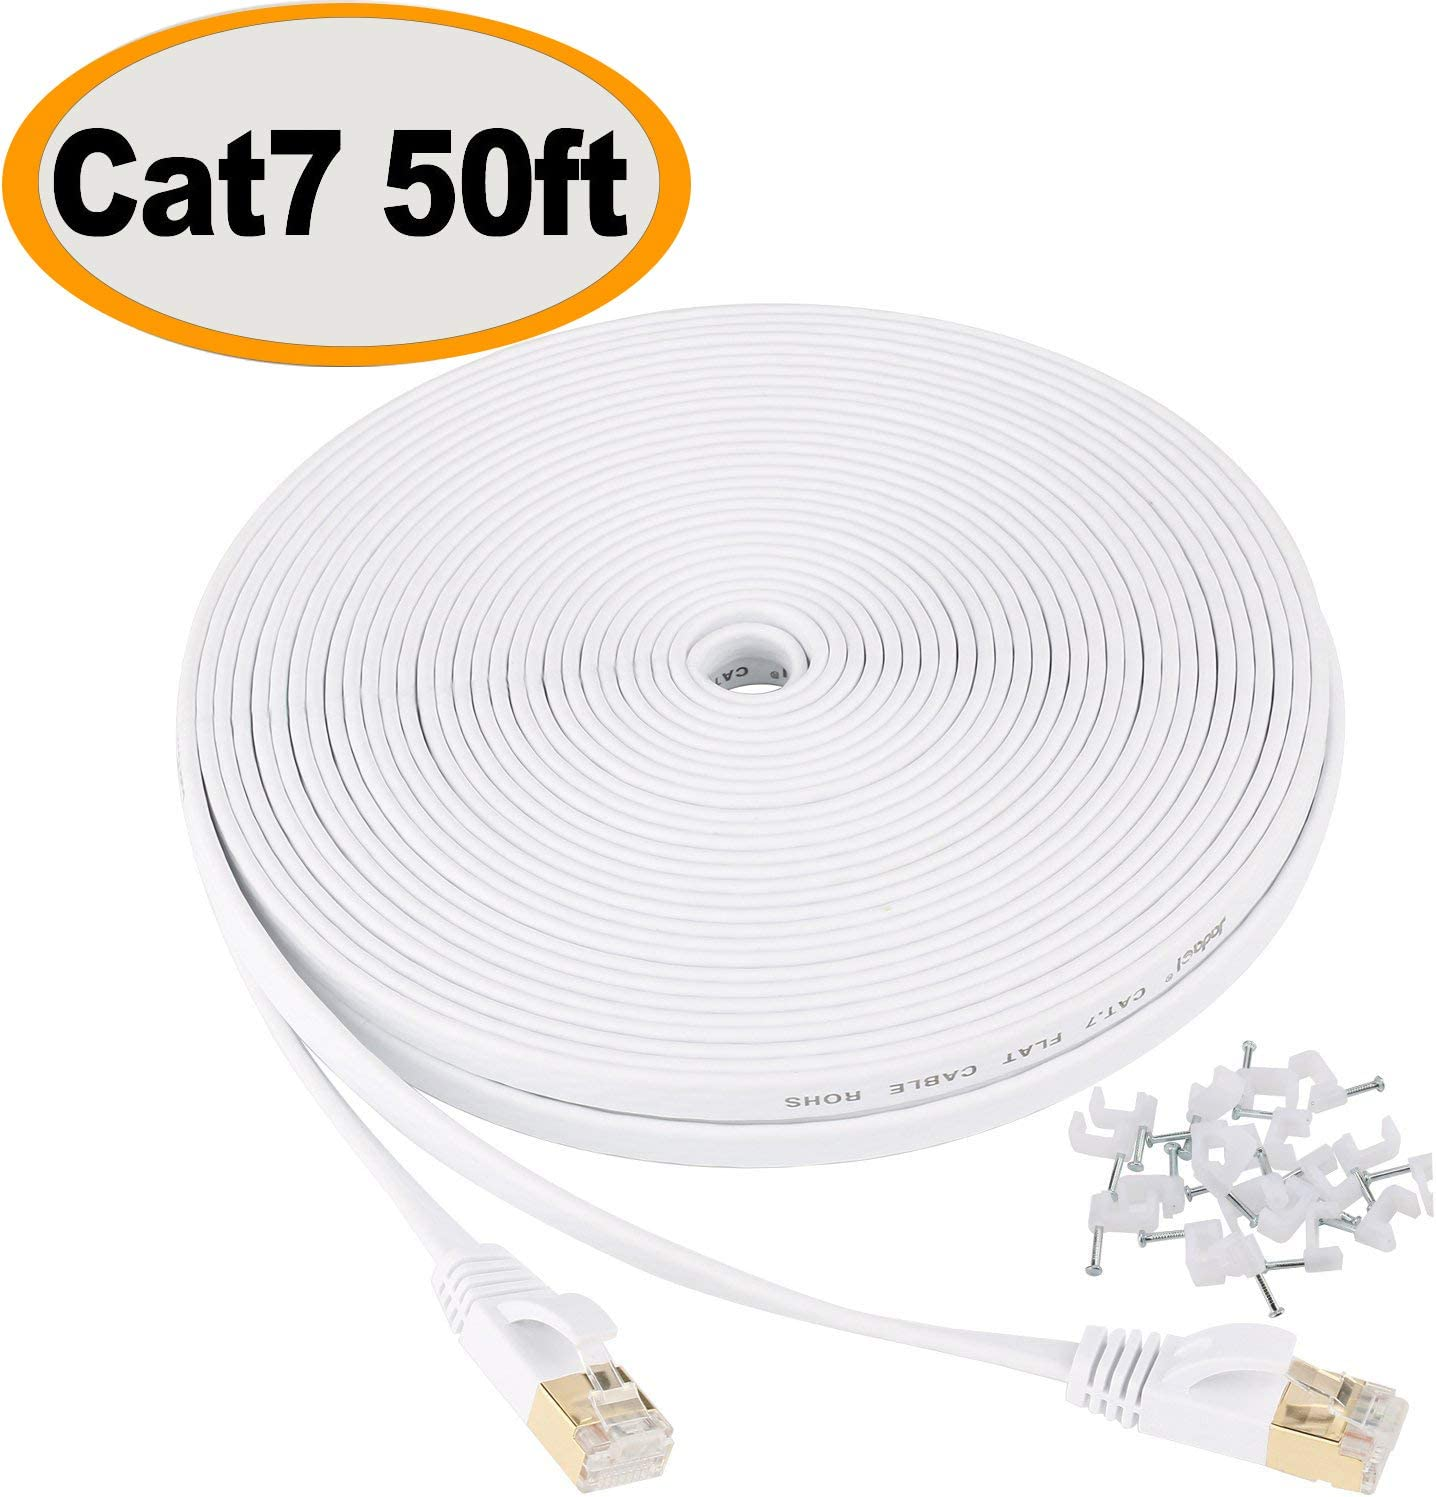 Fast Ethernet LAN Network Data Cable Shielded Router Modem Xbox Computer 50ft